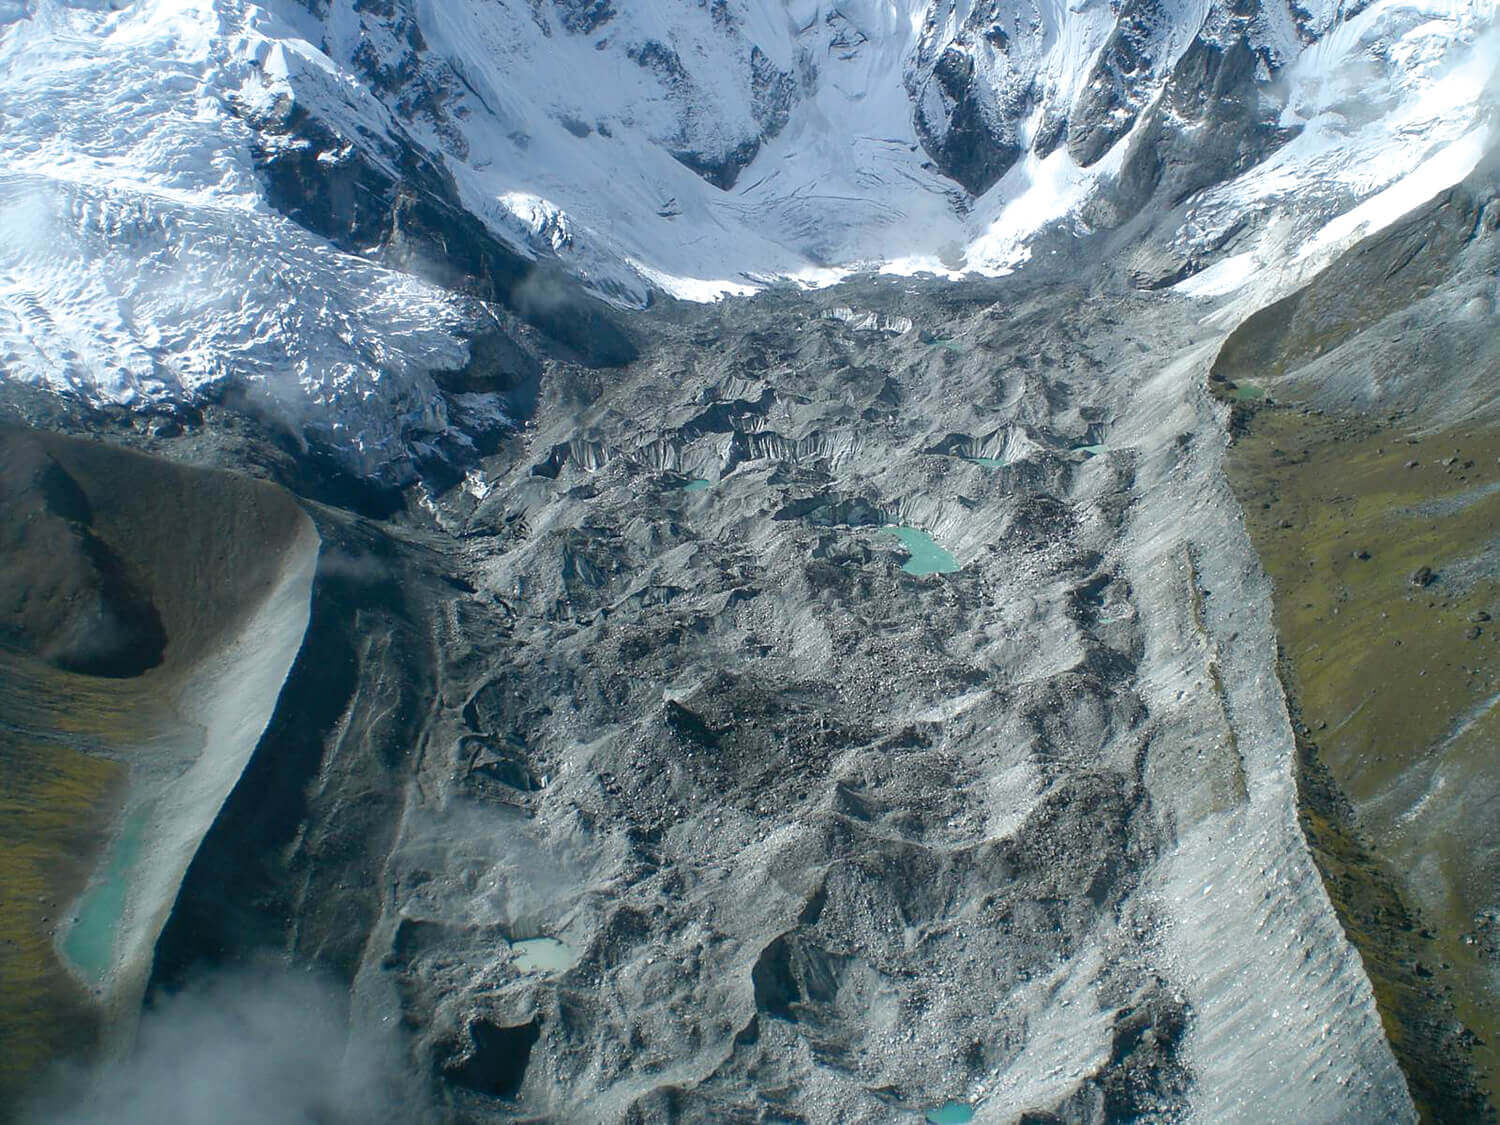 Terrifying assessment of a Himalayan melting